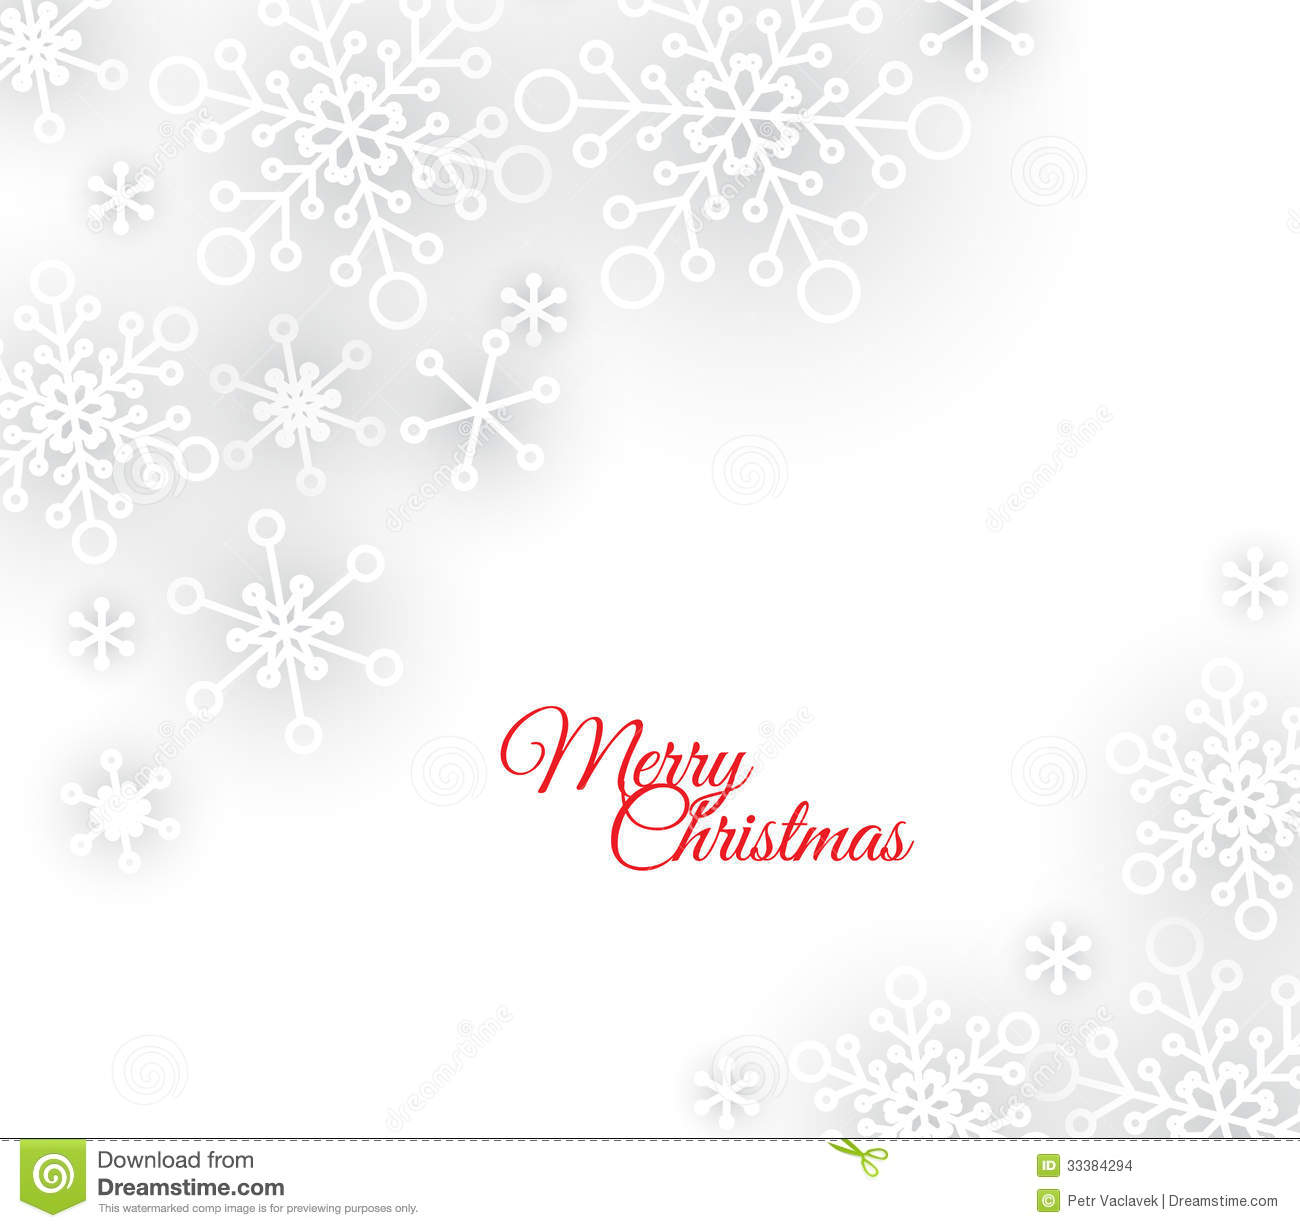 Snowflake Clipart Transparent Background